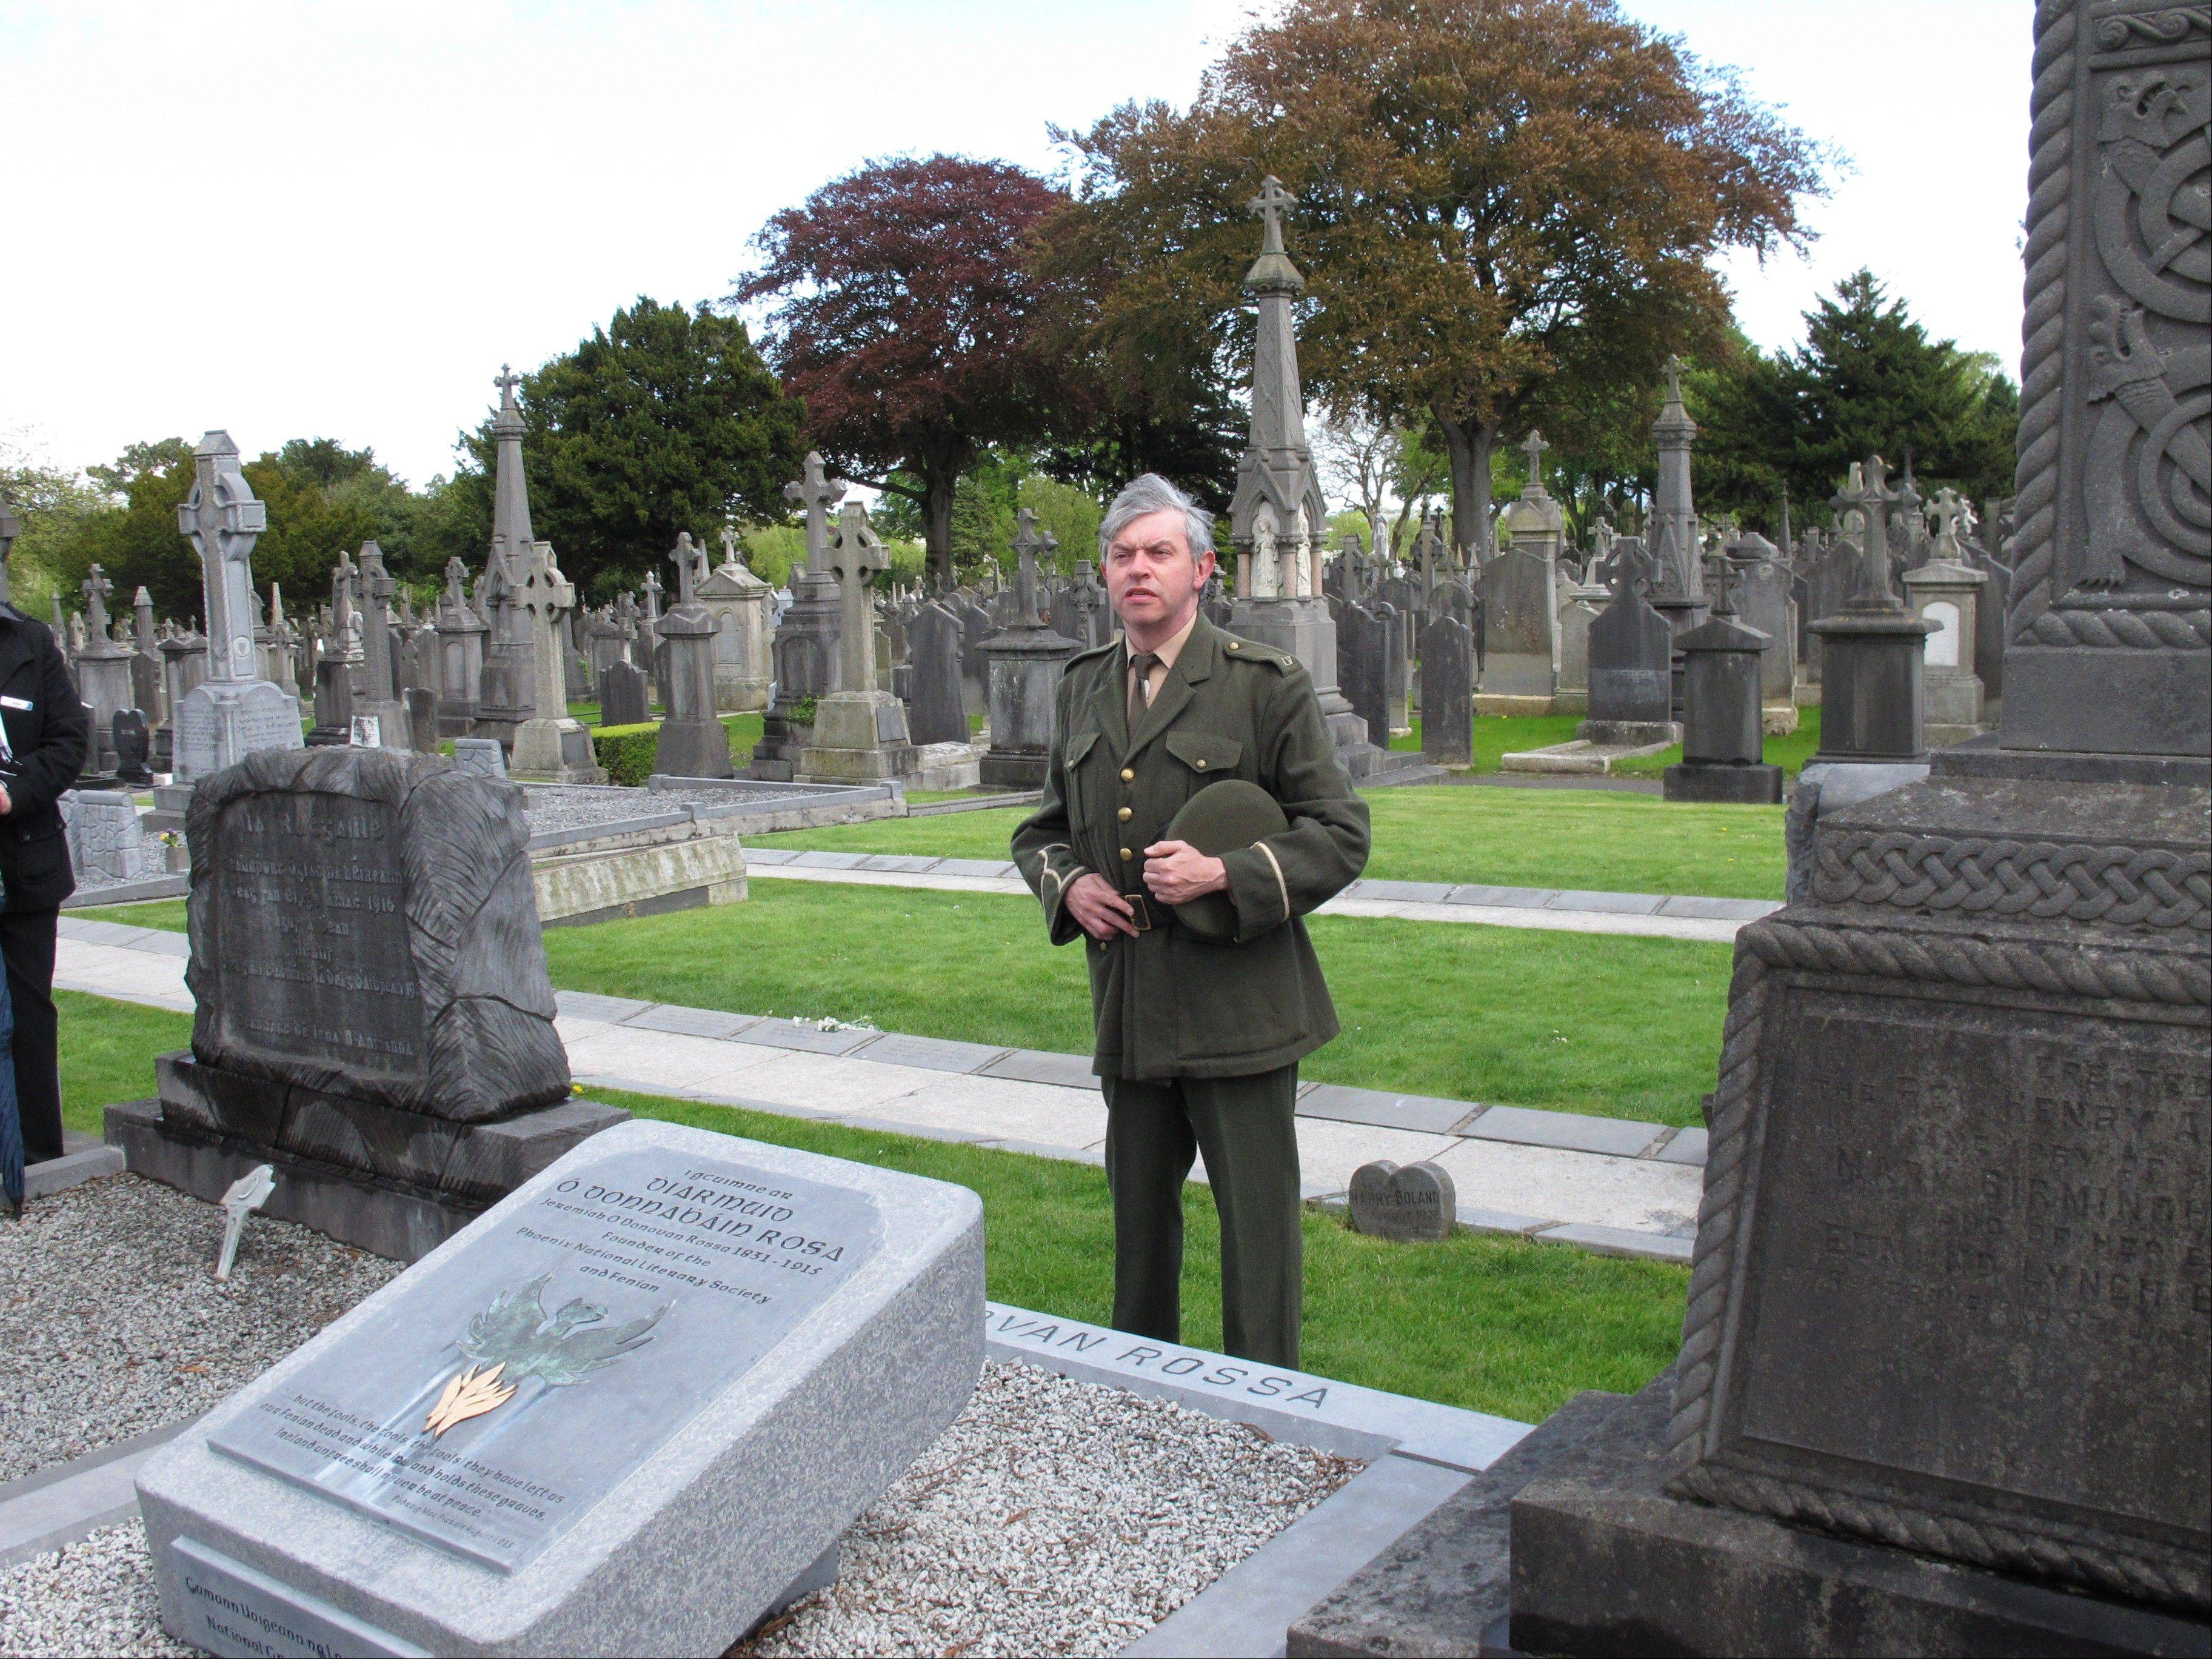 This May 13, 2013 photo shows an actor re-enacting Padraig Pearse's famous oration at the grave of Fenian Jeremiah O'Donovan Rossa, who died in 1915. The oration fueled Irish Republican sentiment which led to the Easter Rising a year later. The reenactment is part of a guided walking tour of the cemetery, which is hosting events related to The Gathering, a yearlong initiative to bring Irish emigrants and their descendants back to Ireland to celebrate their heritage. (AP Photo/Helen O'Neill)